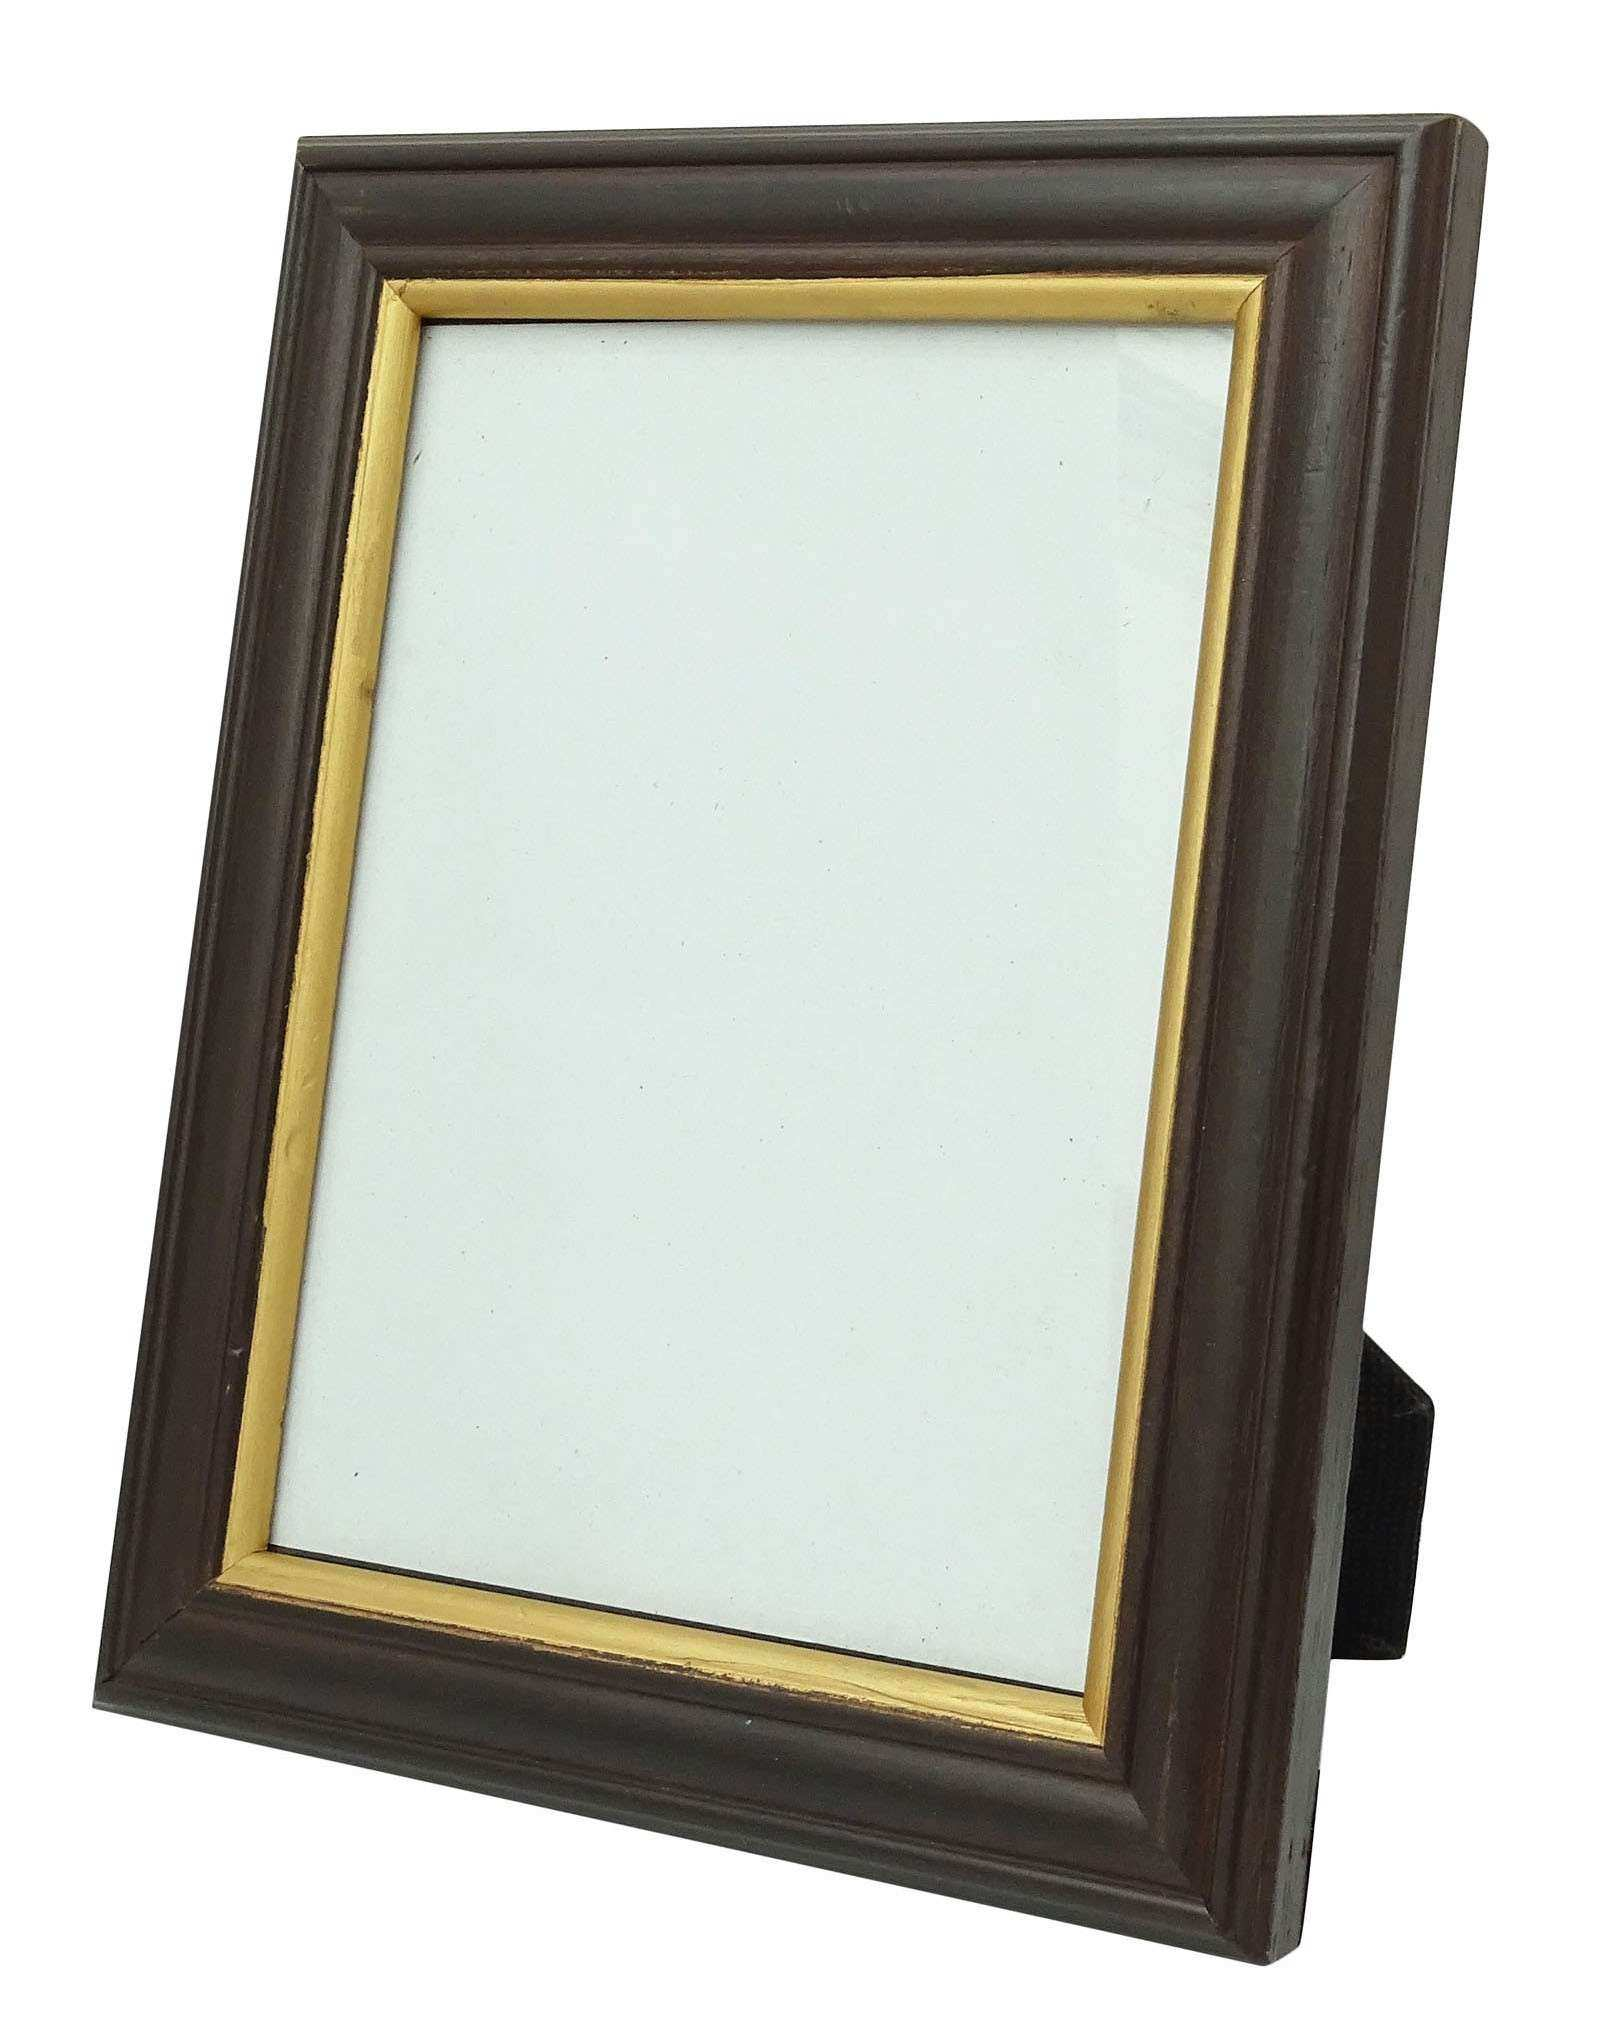 Wall Mounted Picture Frames Unique Smooth Finish Wooden Picture Decorative Hanging